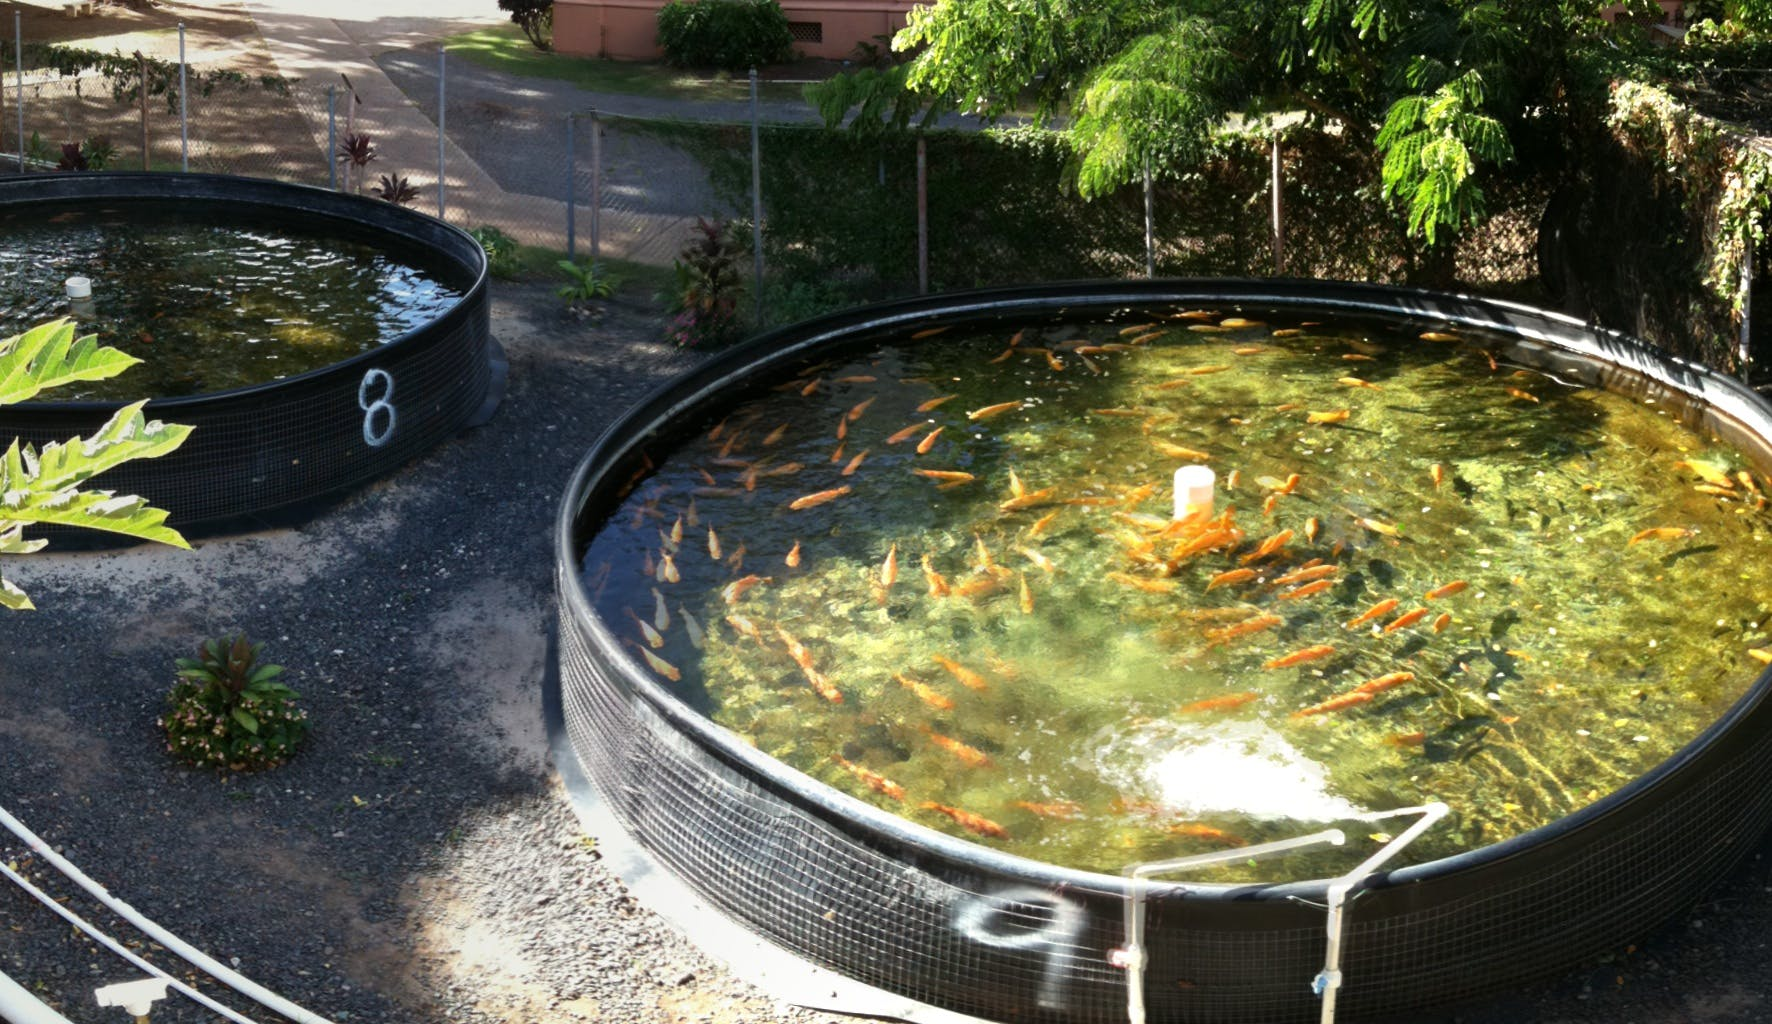 Tilapia are swimming in a small, cylindrical plastic tank.